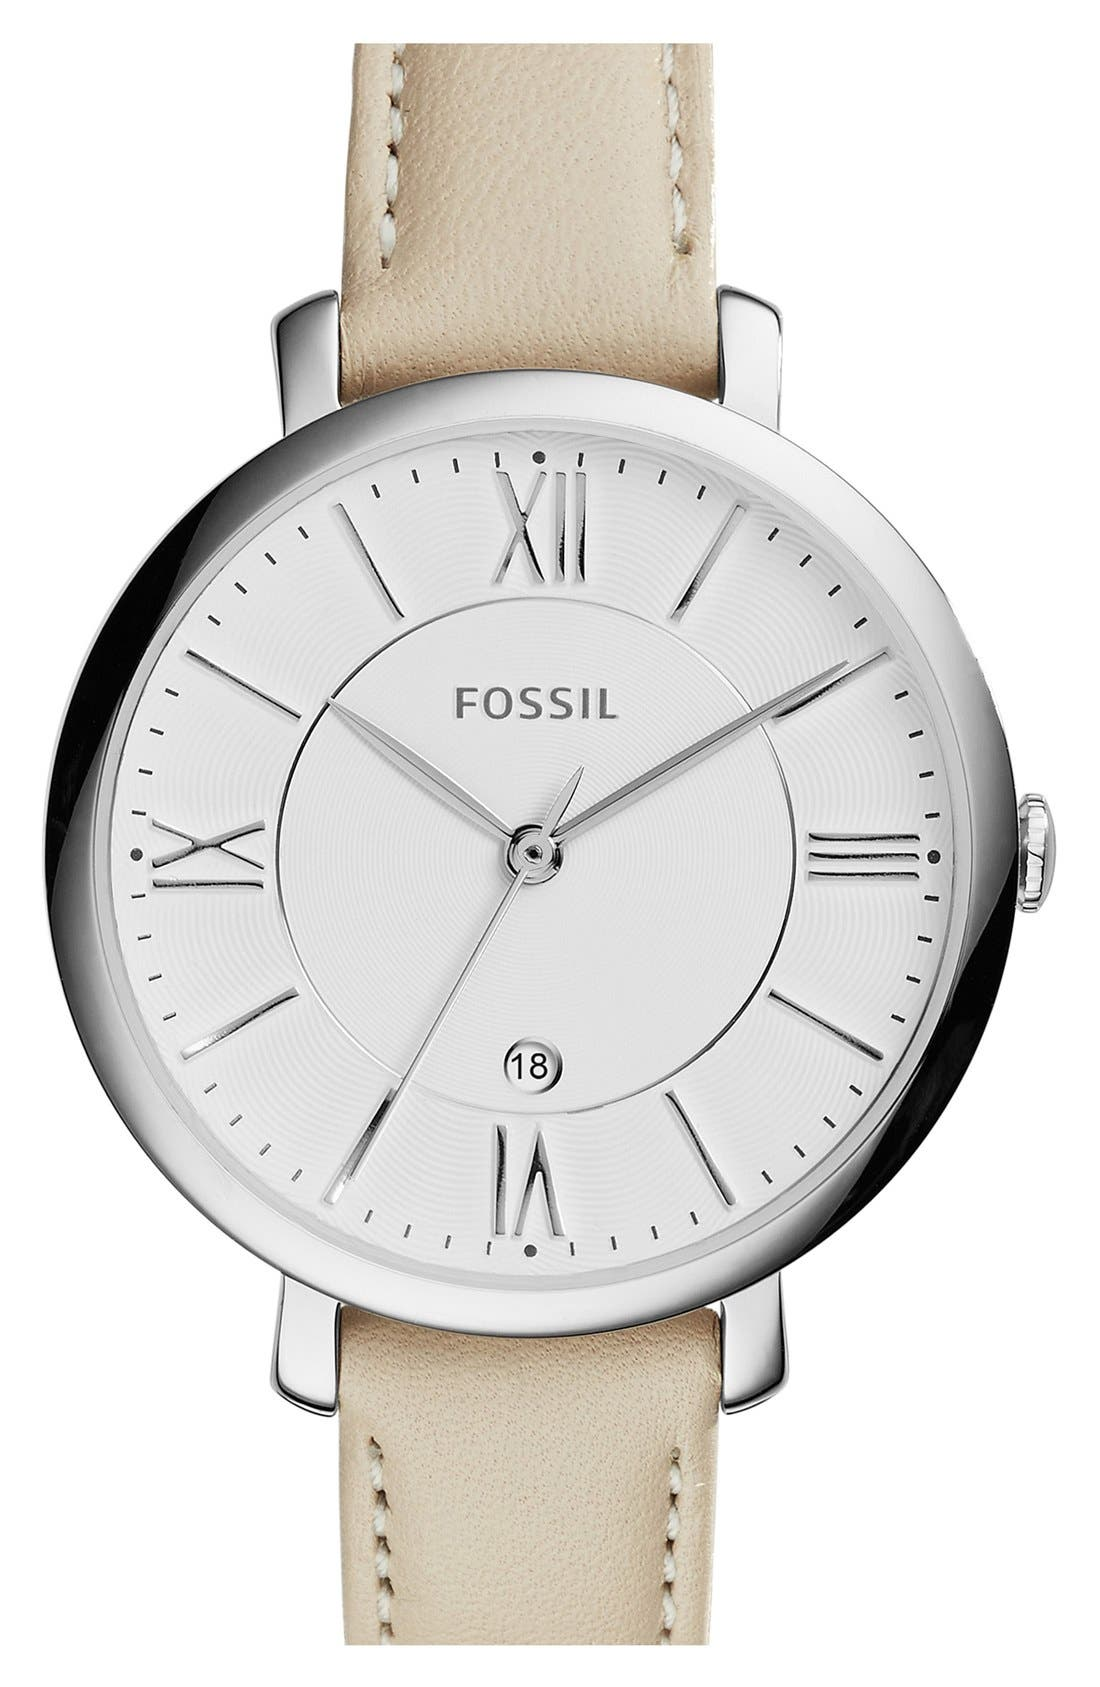 FOSSIL, 'Jacqueline' Round Leather Strap Watch, 36mm, Main thumbnail 1, color, WHITE/ SILVER